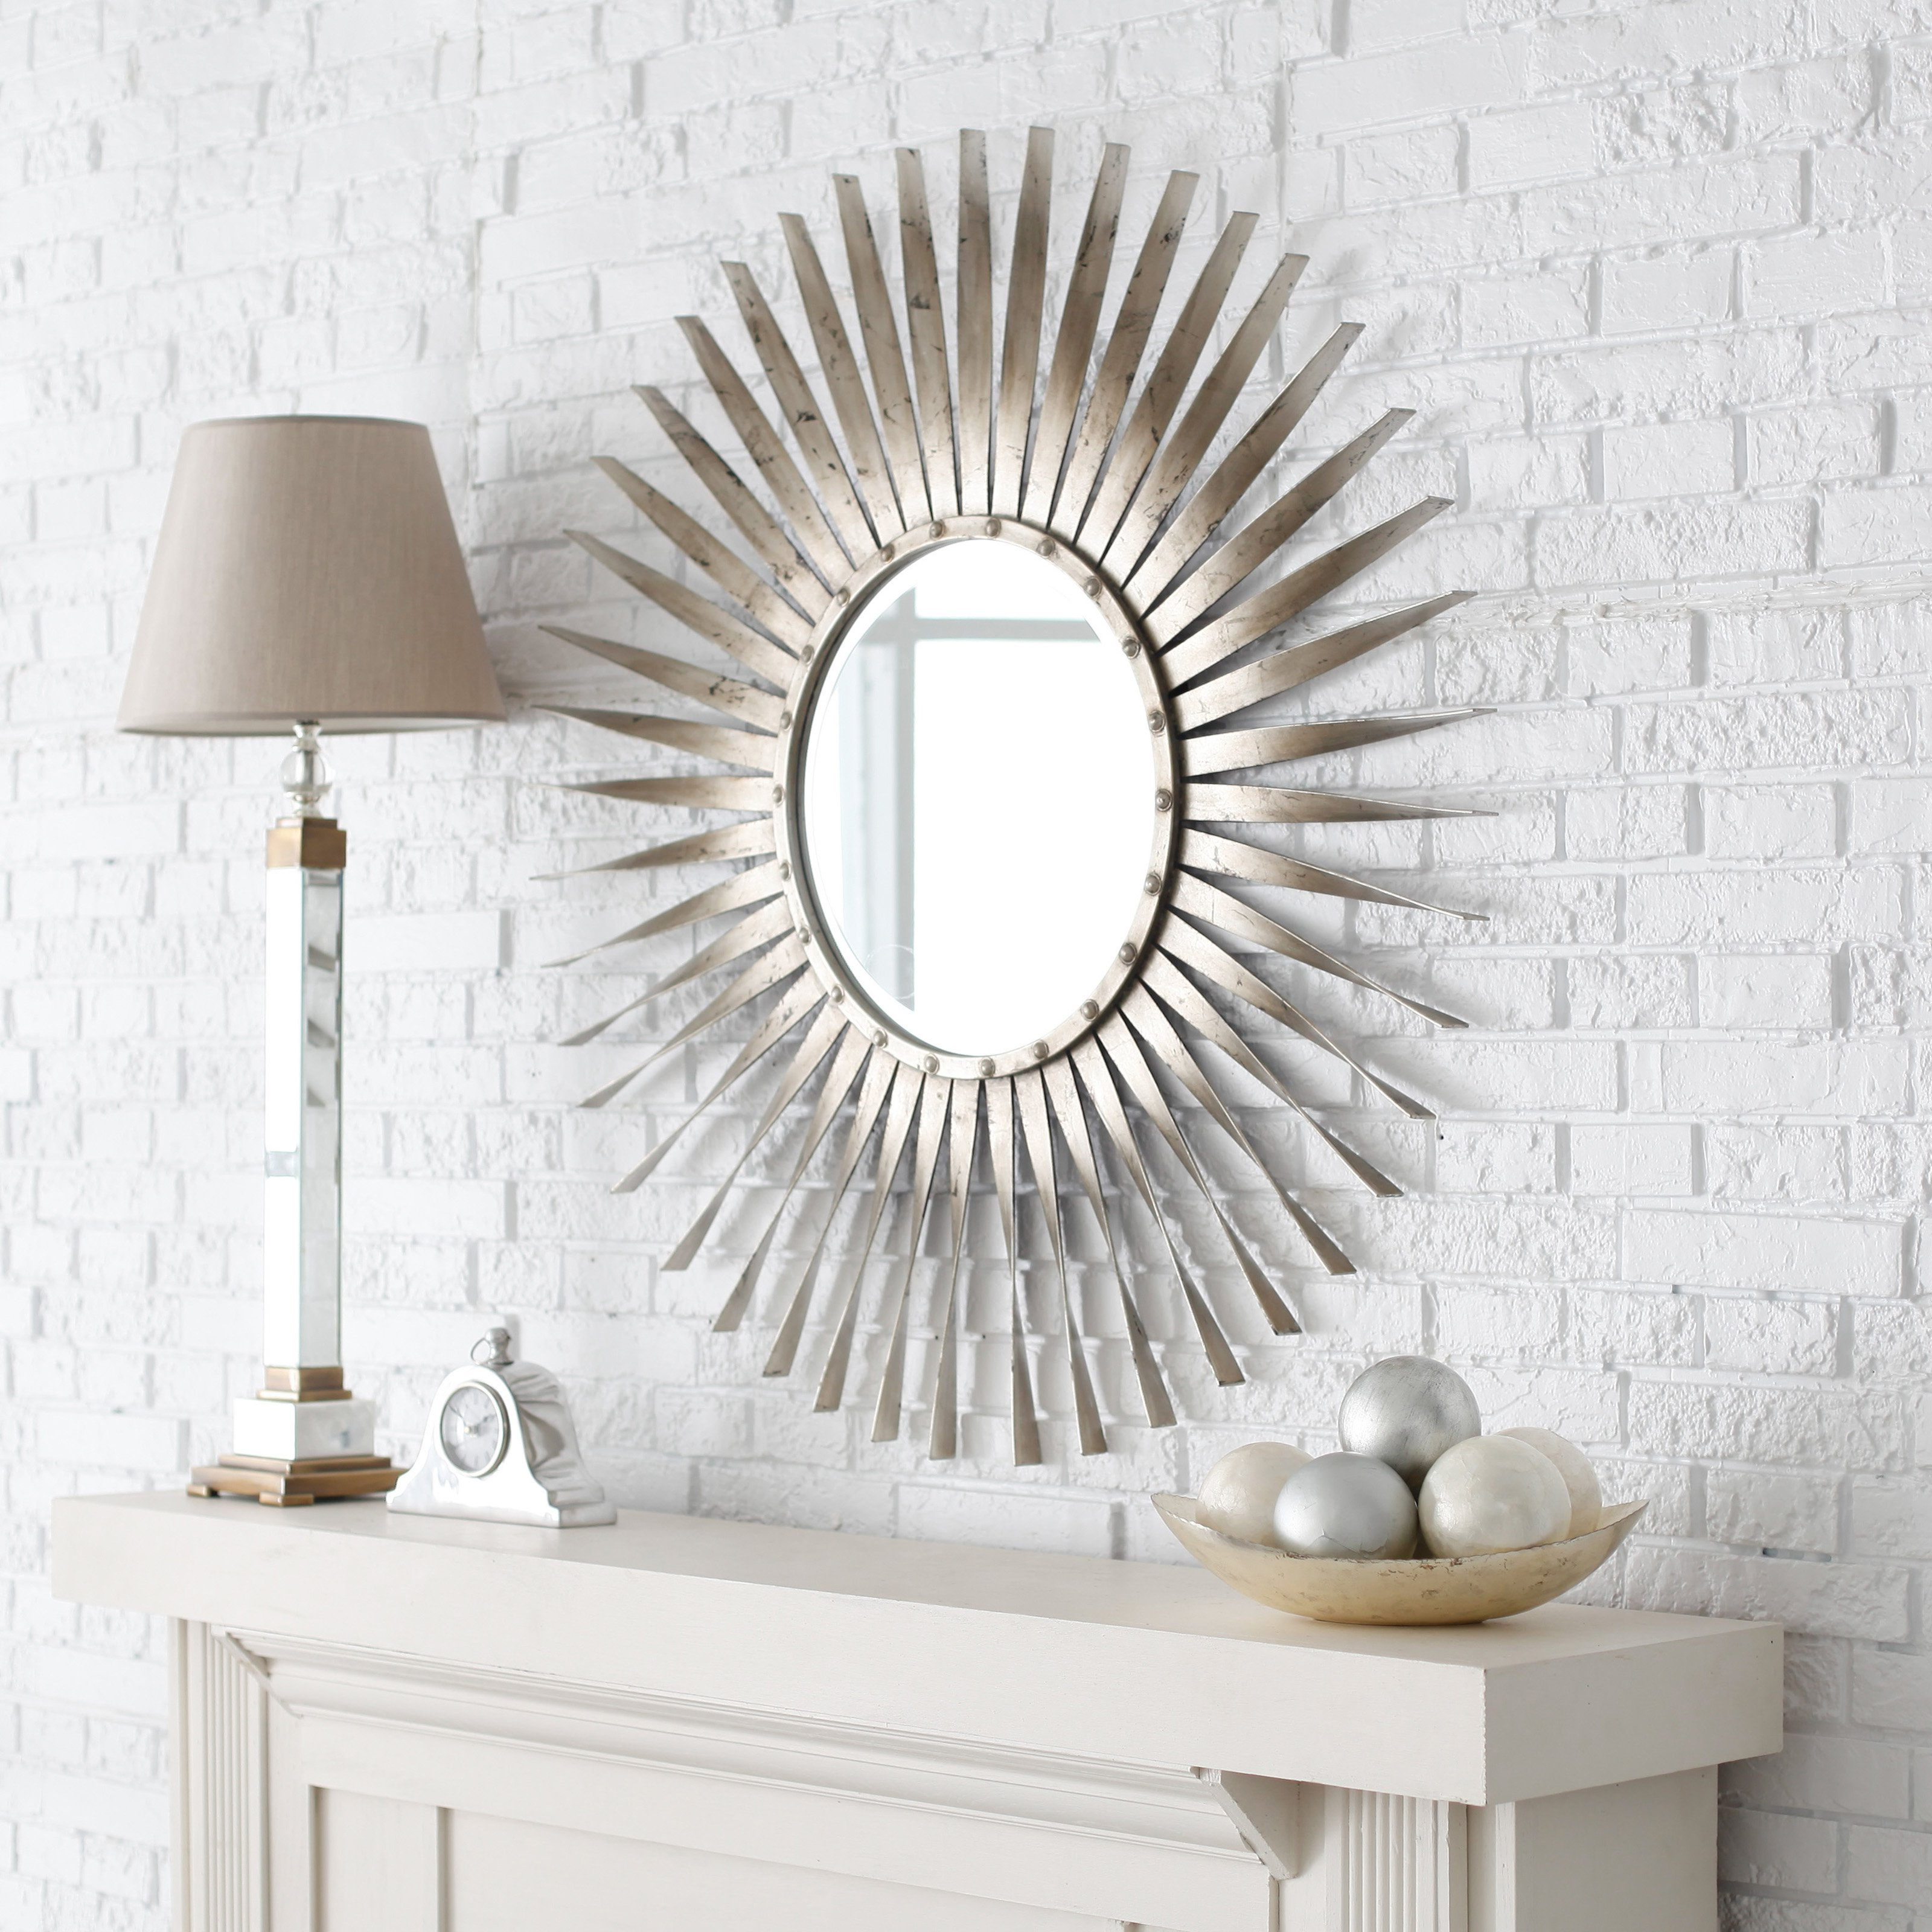 Cheap Large Wall Mirrors Pertaining To Fashionable Smart Design Mirrors For Walls Also Decor Decorative Home (View 10 of 20)